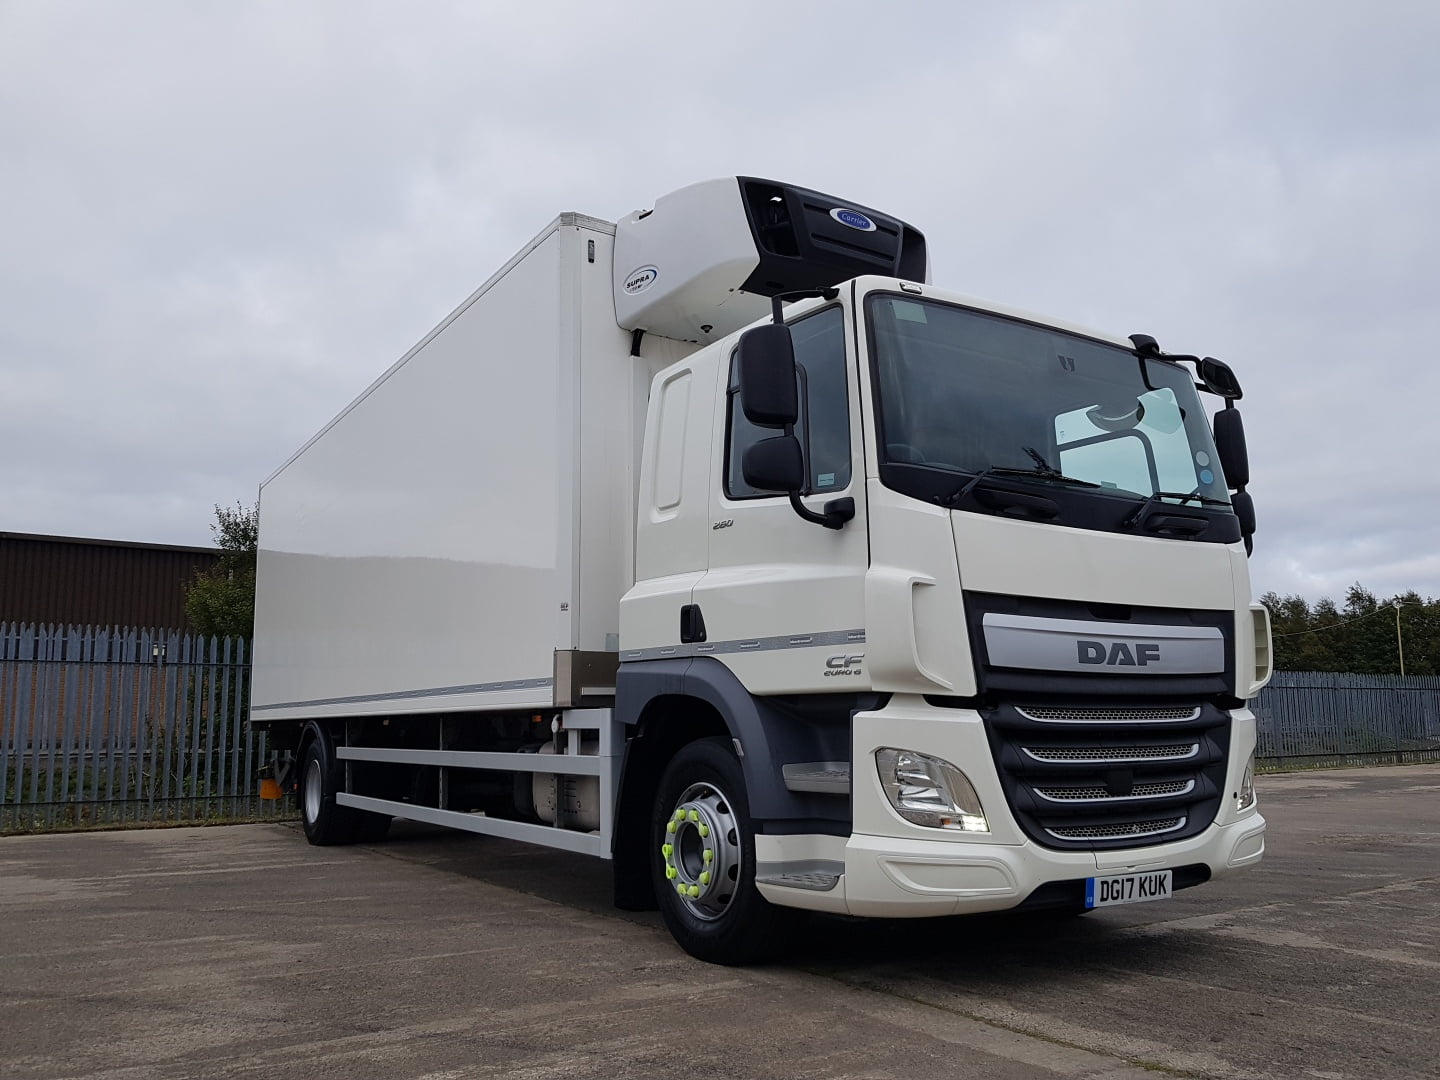 2017 DAF CF Fridge Tailift, 18 Tonne, Dhollandia Tuckunder Tailift (1500kg Capacity), Carrier Supra Fridge Engine, Euro 6, Automatic Gearbox, Single Sleeper Cab, Roller Shutter Rear Door, Aluminium Floor, Load Lock Rails, Low Mileage, Warranty Available.